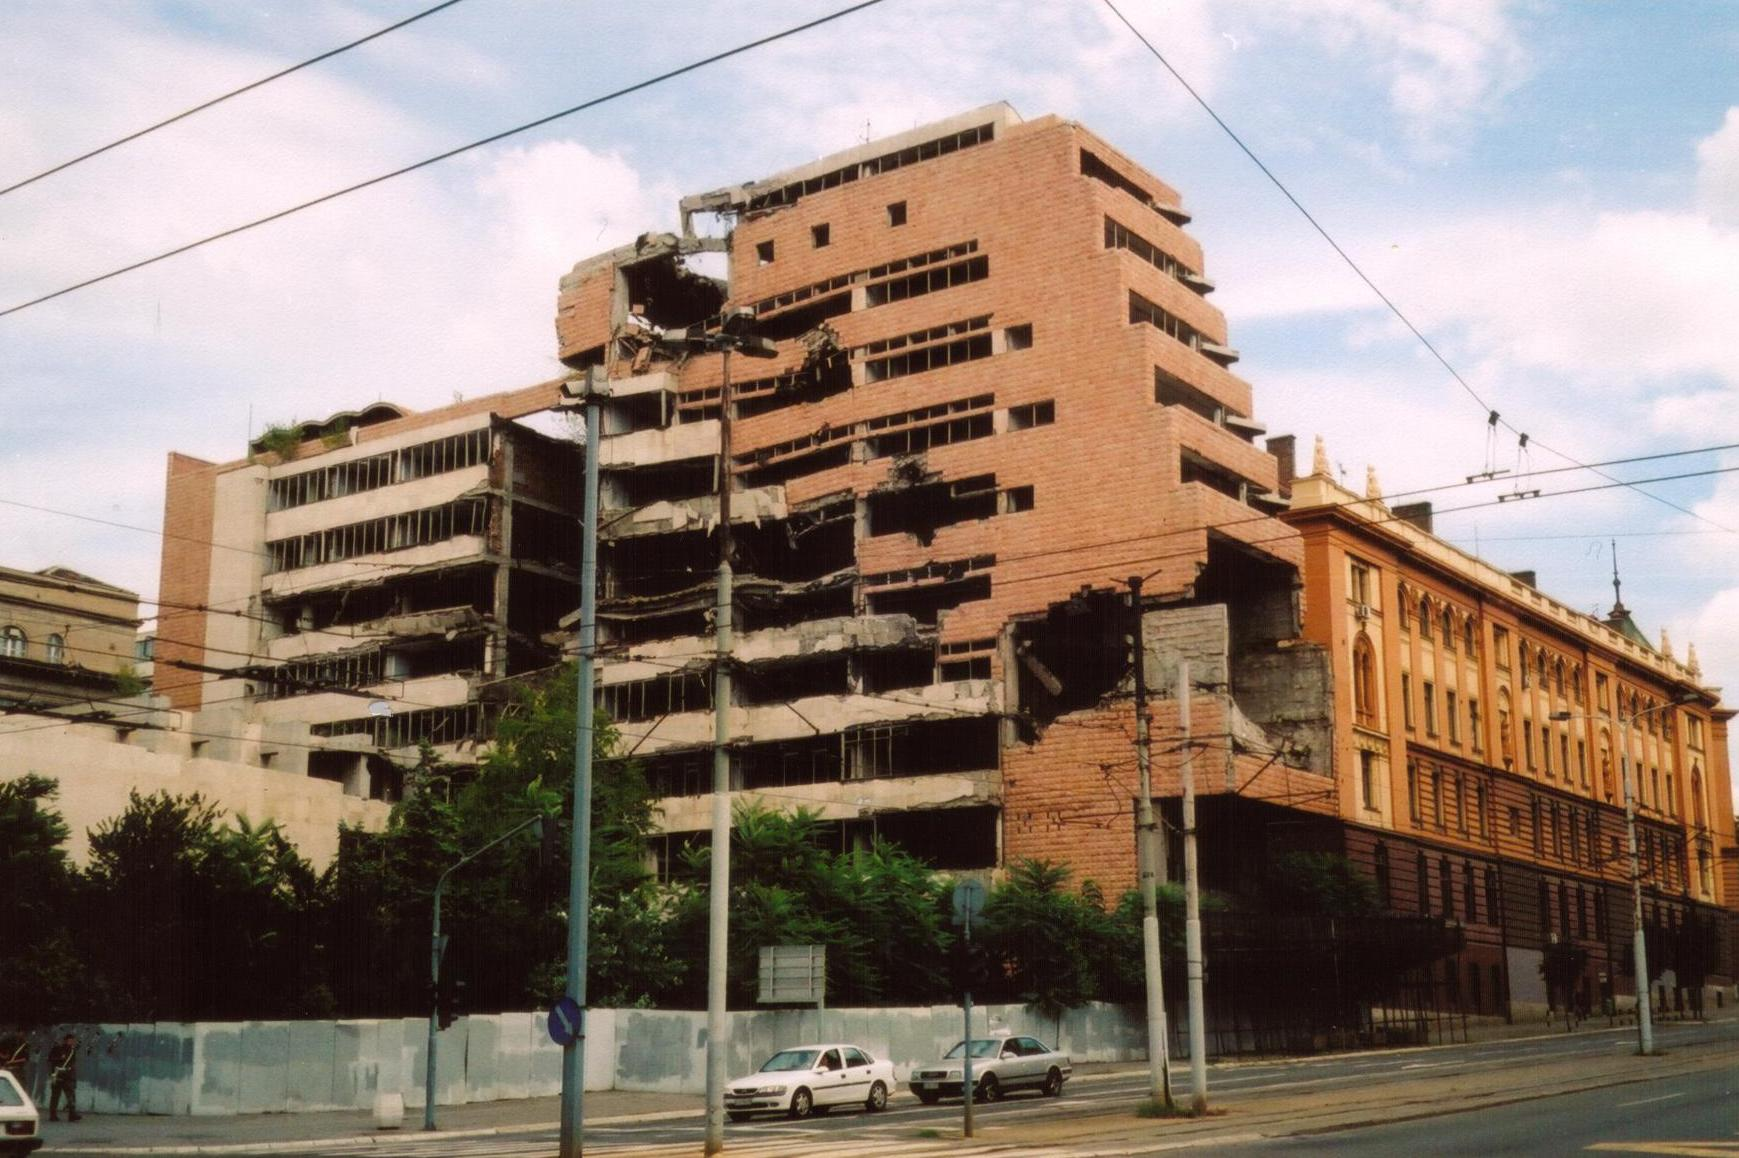 19 Years since the Start of the NATO Military Aggression on Serbia (FRY)